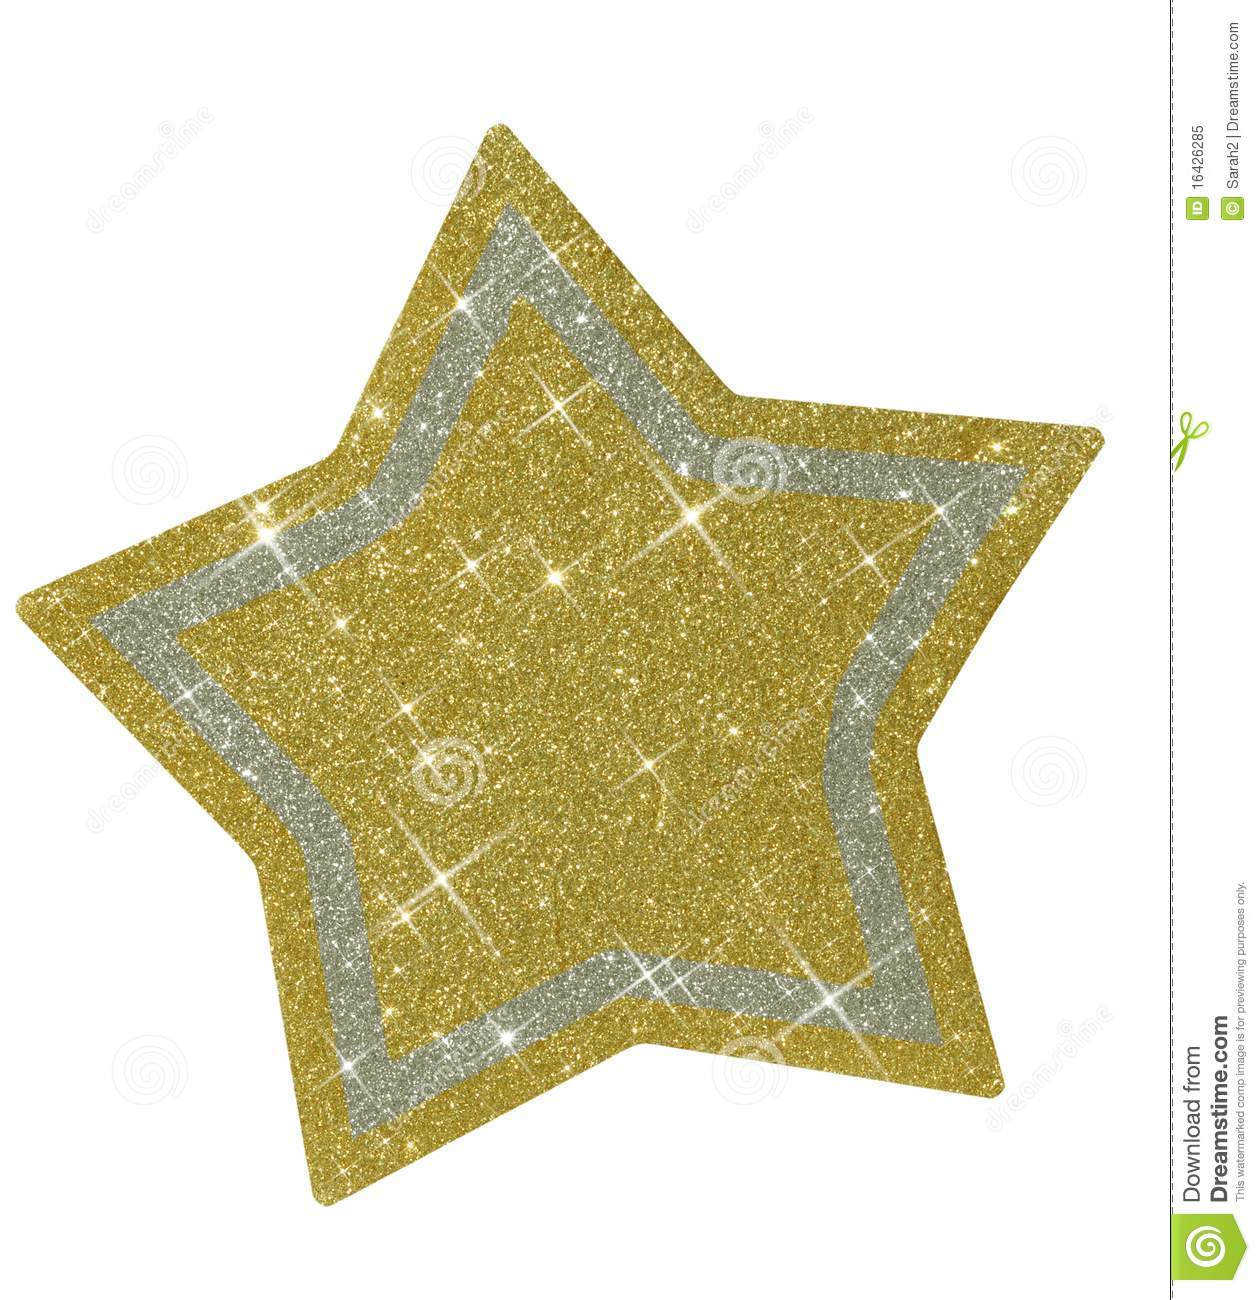 Christmas Glittery Star   Isolated Royalty Free Stock Photo   Image